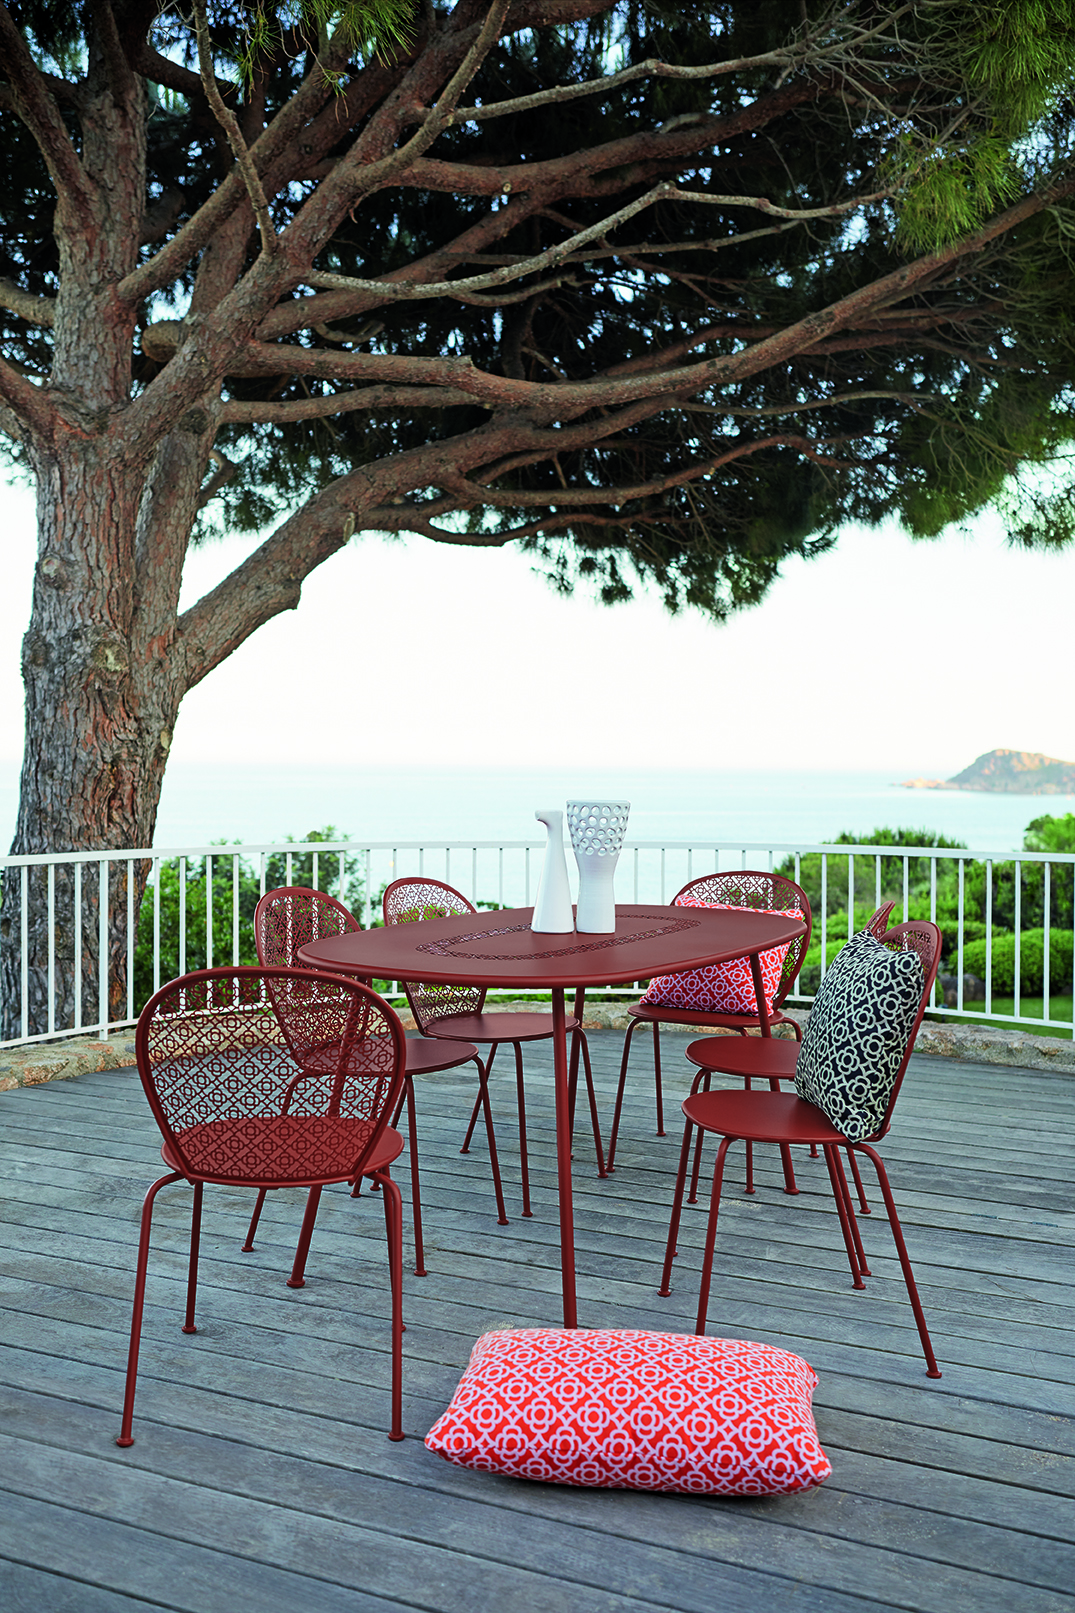 Lorette oval table by Fermob and available from le petit jardin